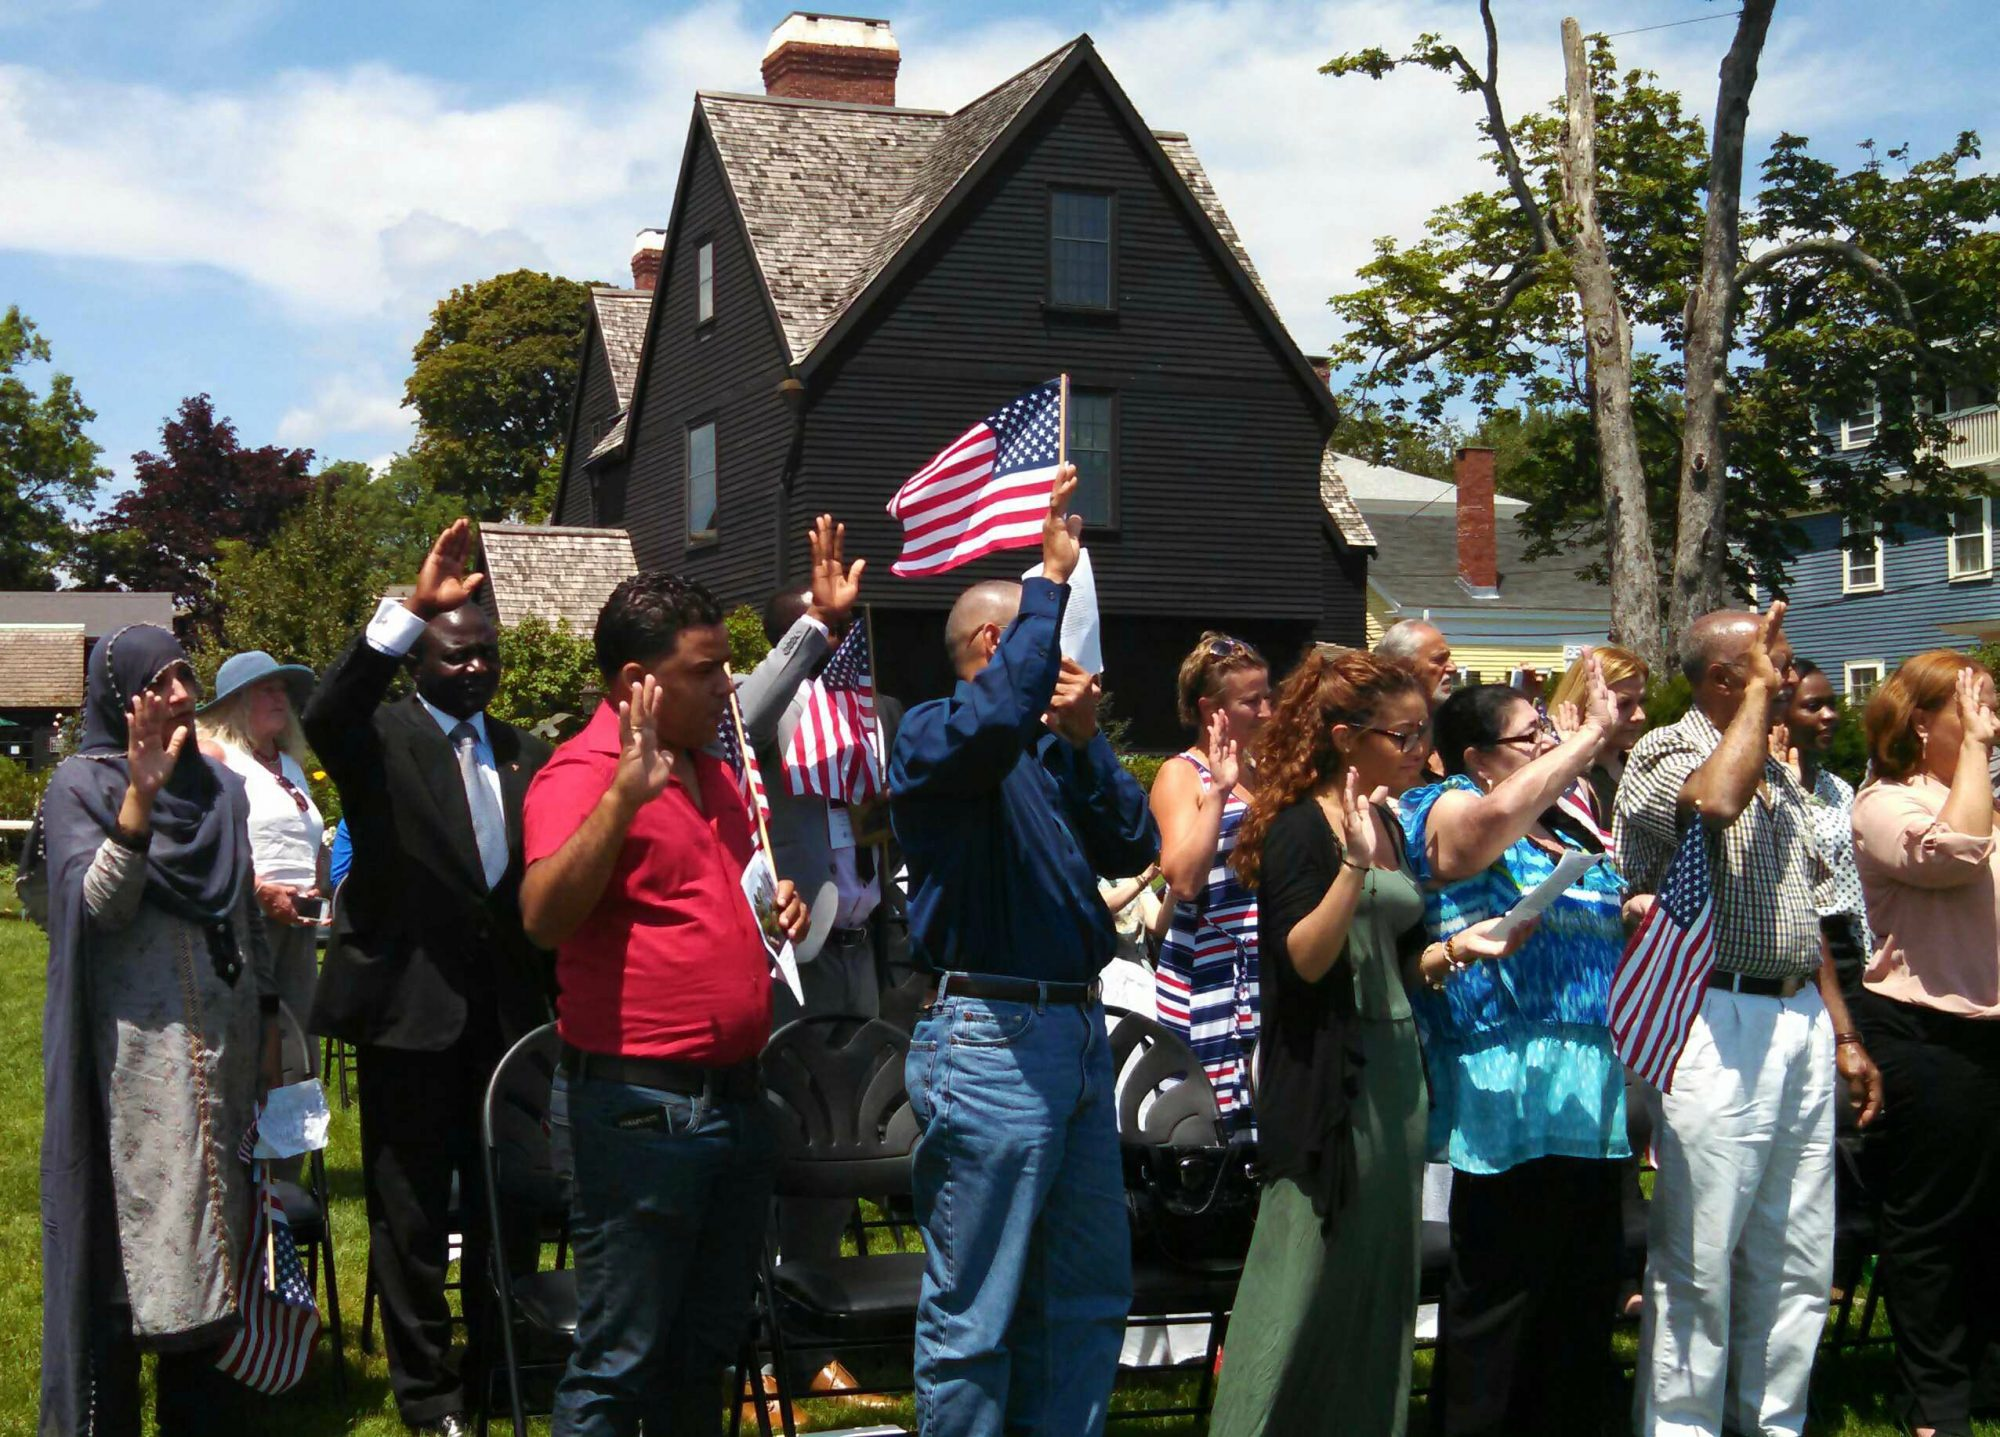 Naturalization Ceremony - The House of the Seven Gables